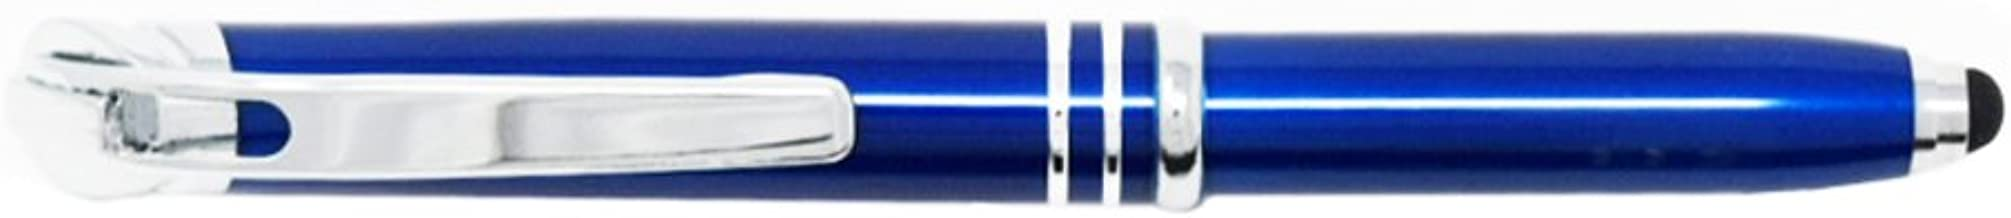 LED Lighted Tip Ballpoint Pen with Stylus (Blue)